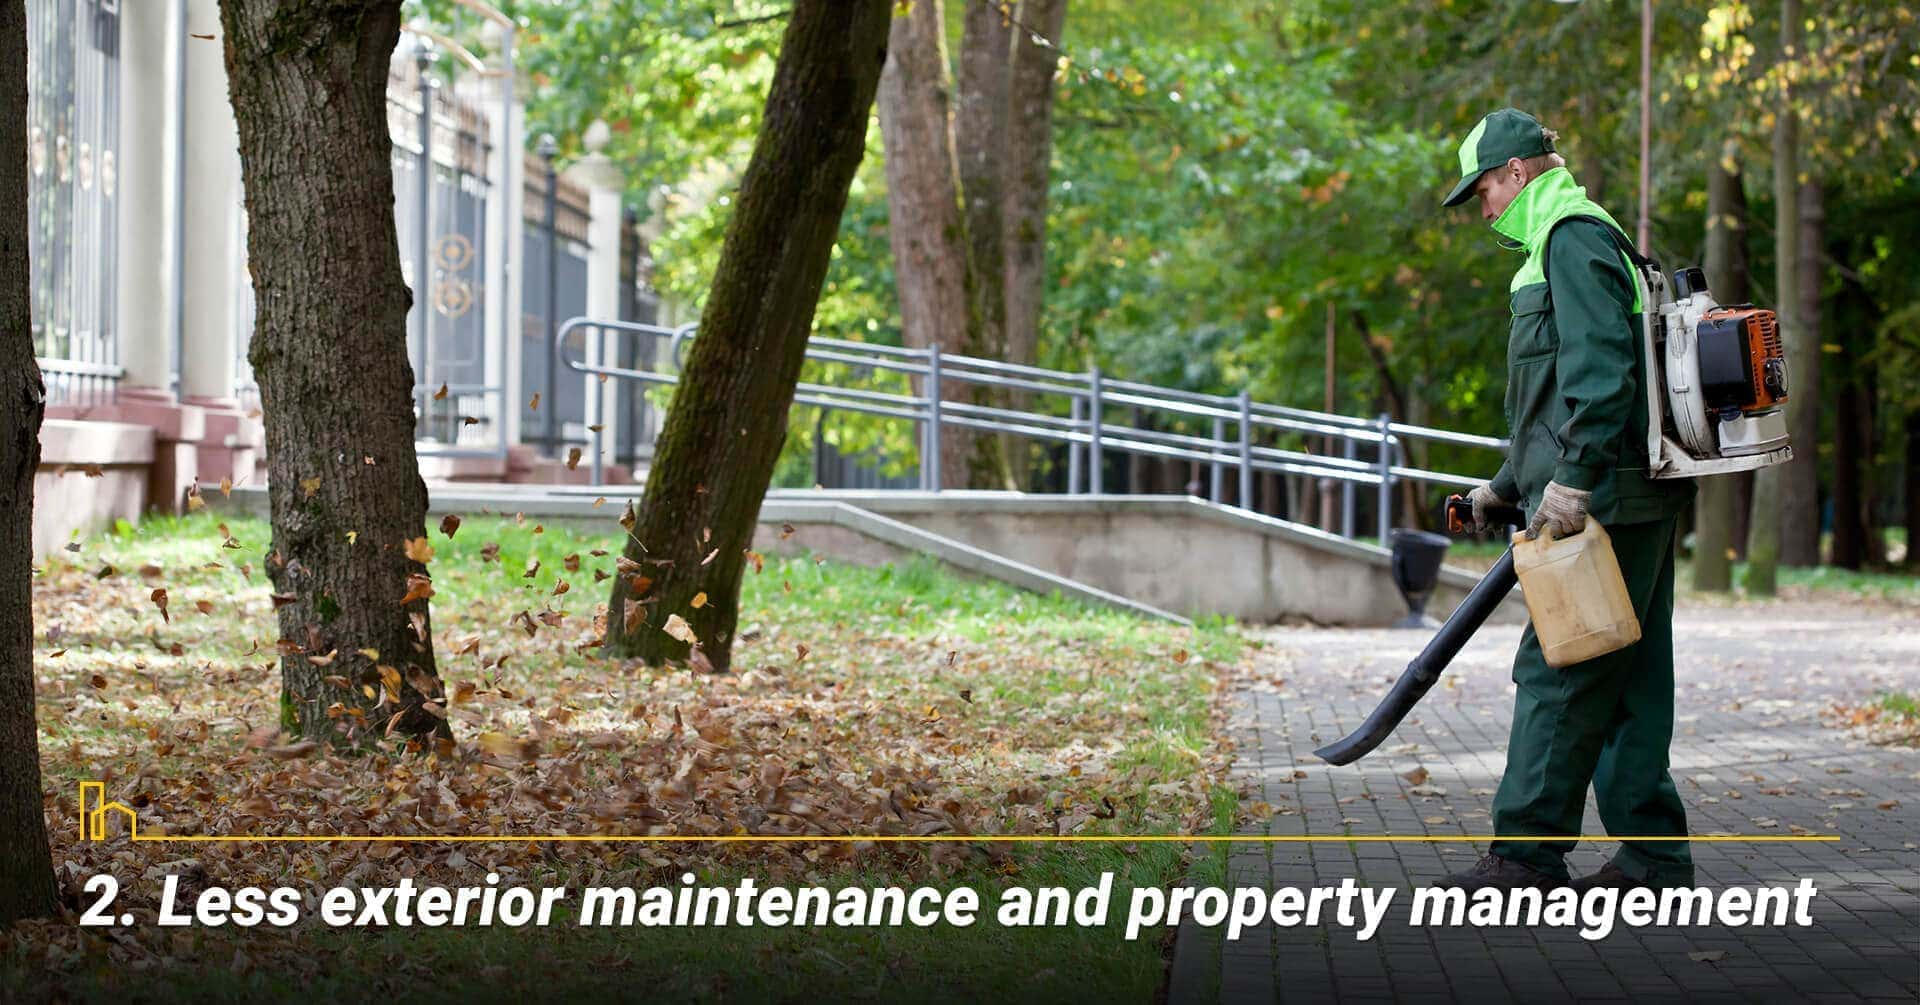 Less exterior maintenance and property management